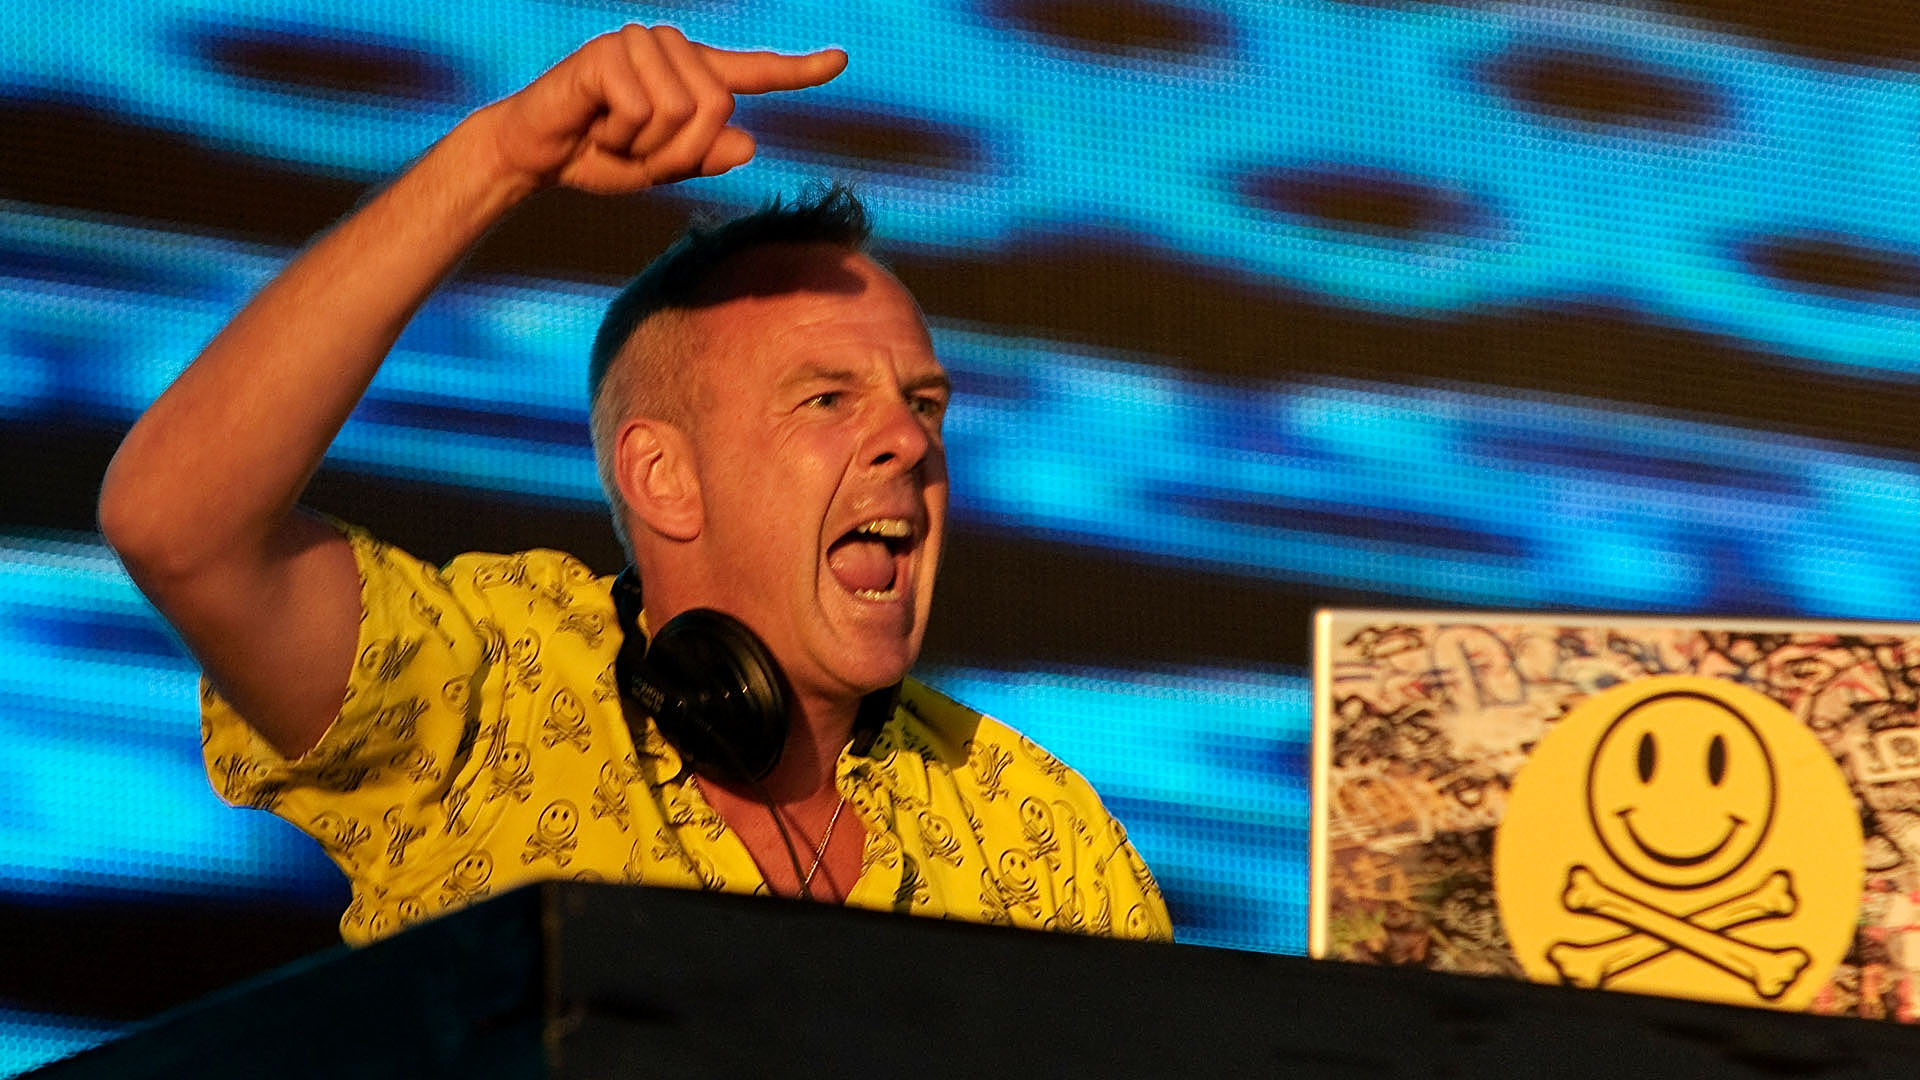 Fatboy Slim Hydro 9th December 2016